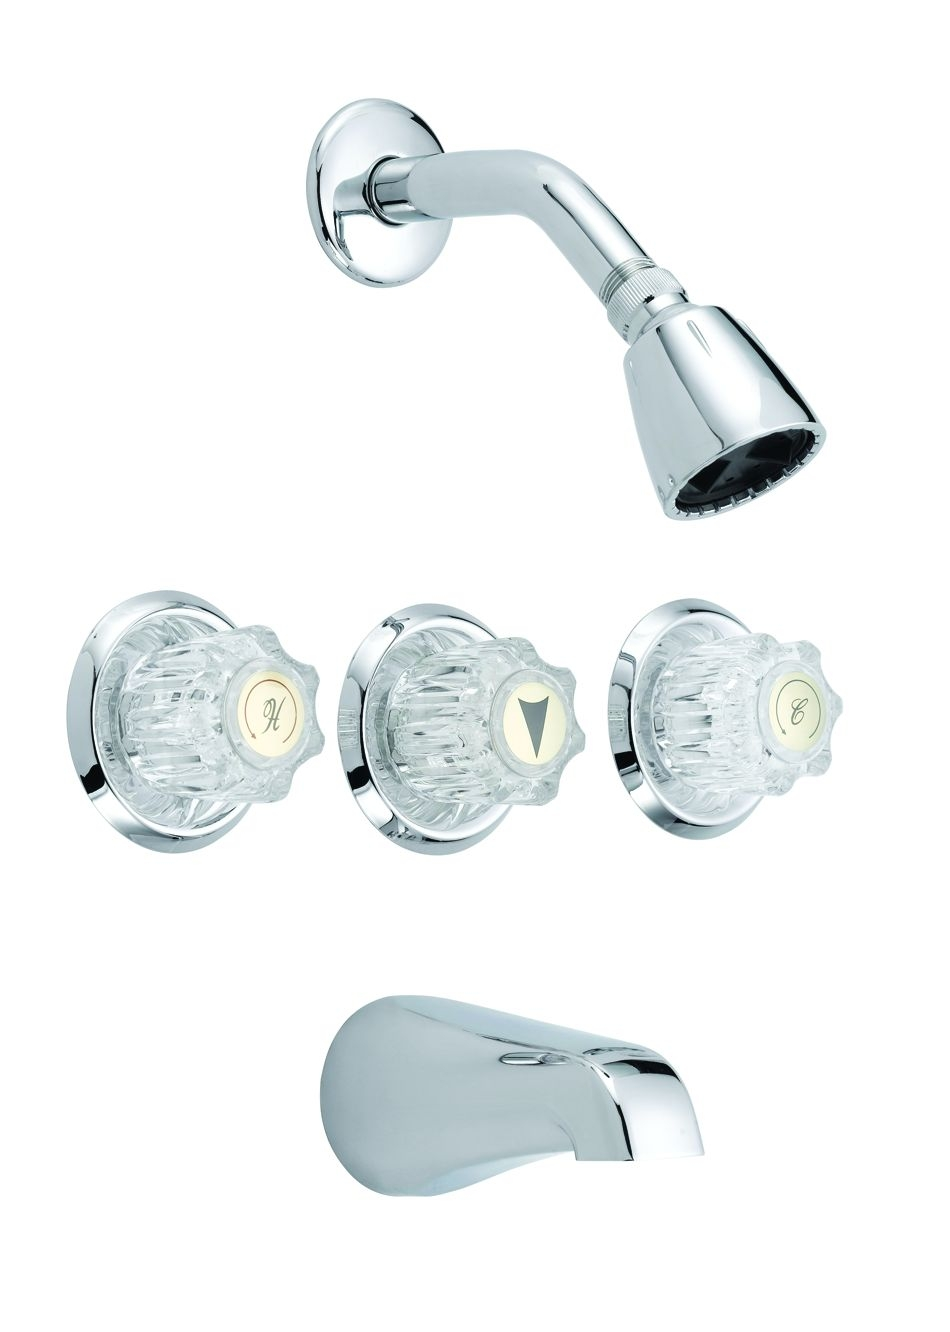 Ideas, plumbing faucets bath faucets tub shower matco norca murray intended for proportions 950 x 1332  .